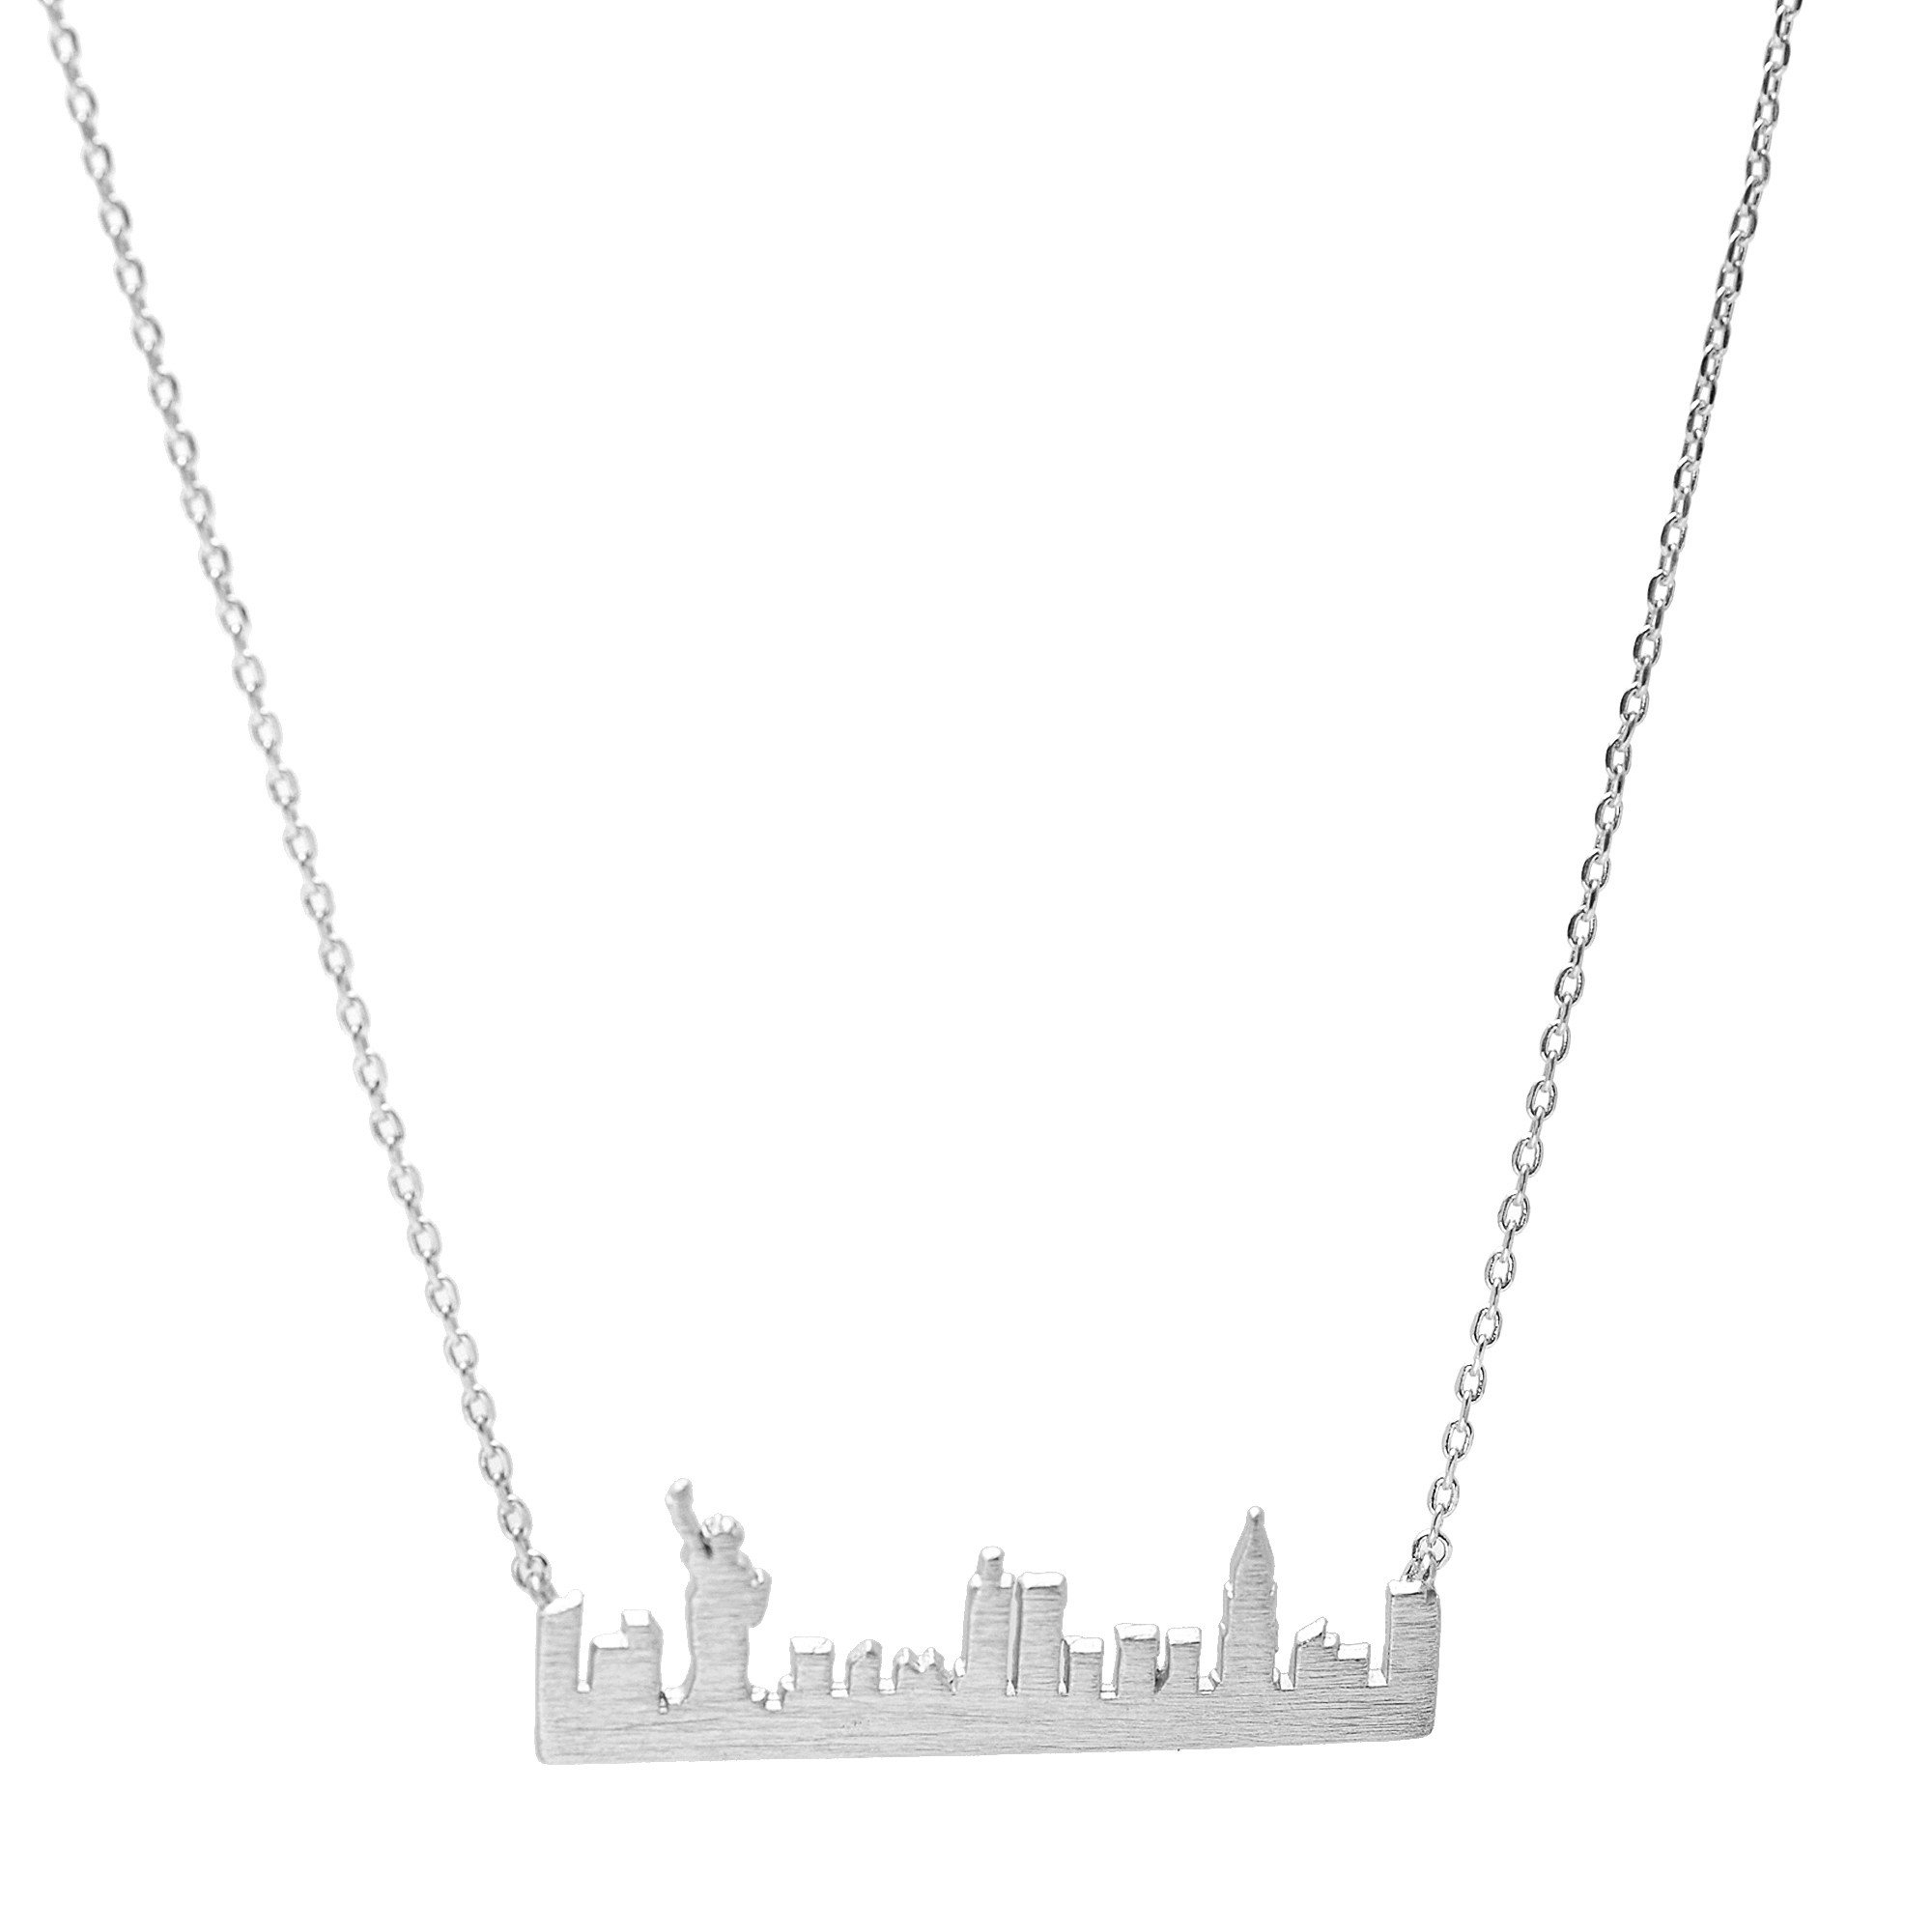 2000x2000 Spinningdaisy Handcrafted Empire State Building Nyc Cityscape Necklace